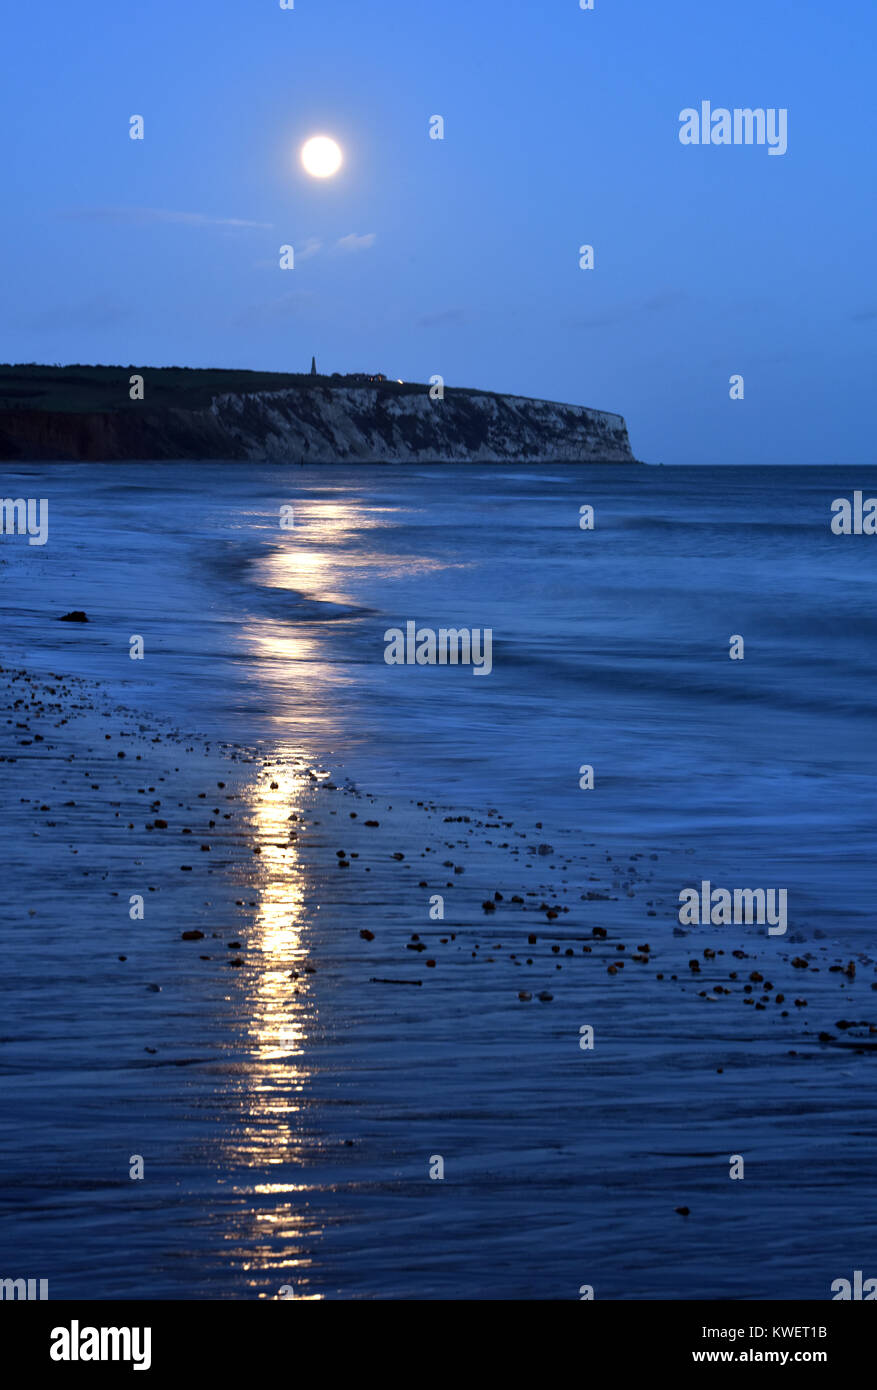 A super moon rising over the downs at Culver on the Isle of Wight with Sandown bay beach and waves in the foreground. Stock Photo